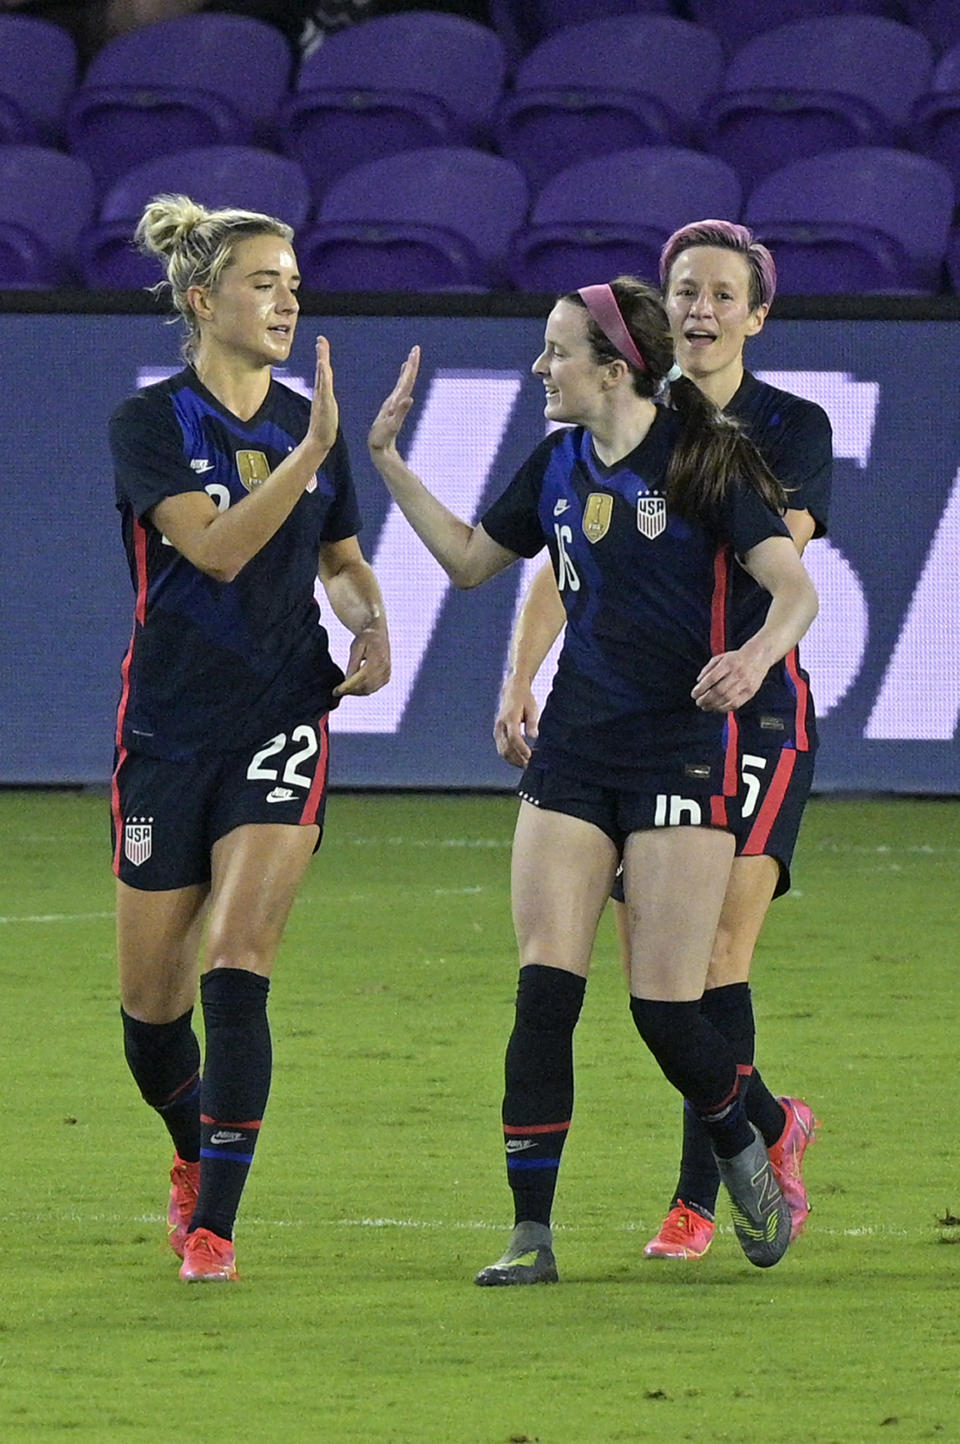 United States midfielder Kristie Mewis (22) is congratulated by midfielder Rose Lavelle (16) and forward Megan Rapinoe, right, after Mewis scored a goal during the first half of a SheBelieves Cup women's soccer match against Argentina, Wednesday, Feb. 24, 2021, in Orlando, Fla. (AP Photo/Phelan M. Ebenhack)